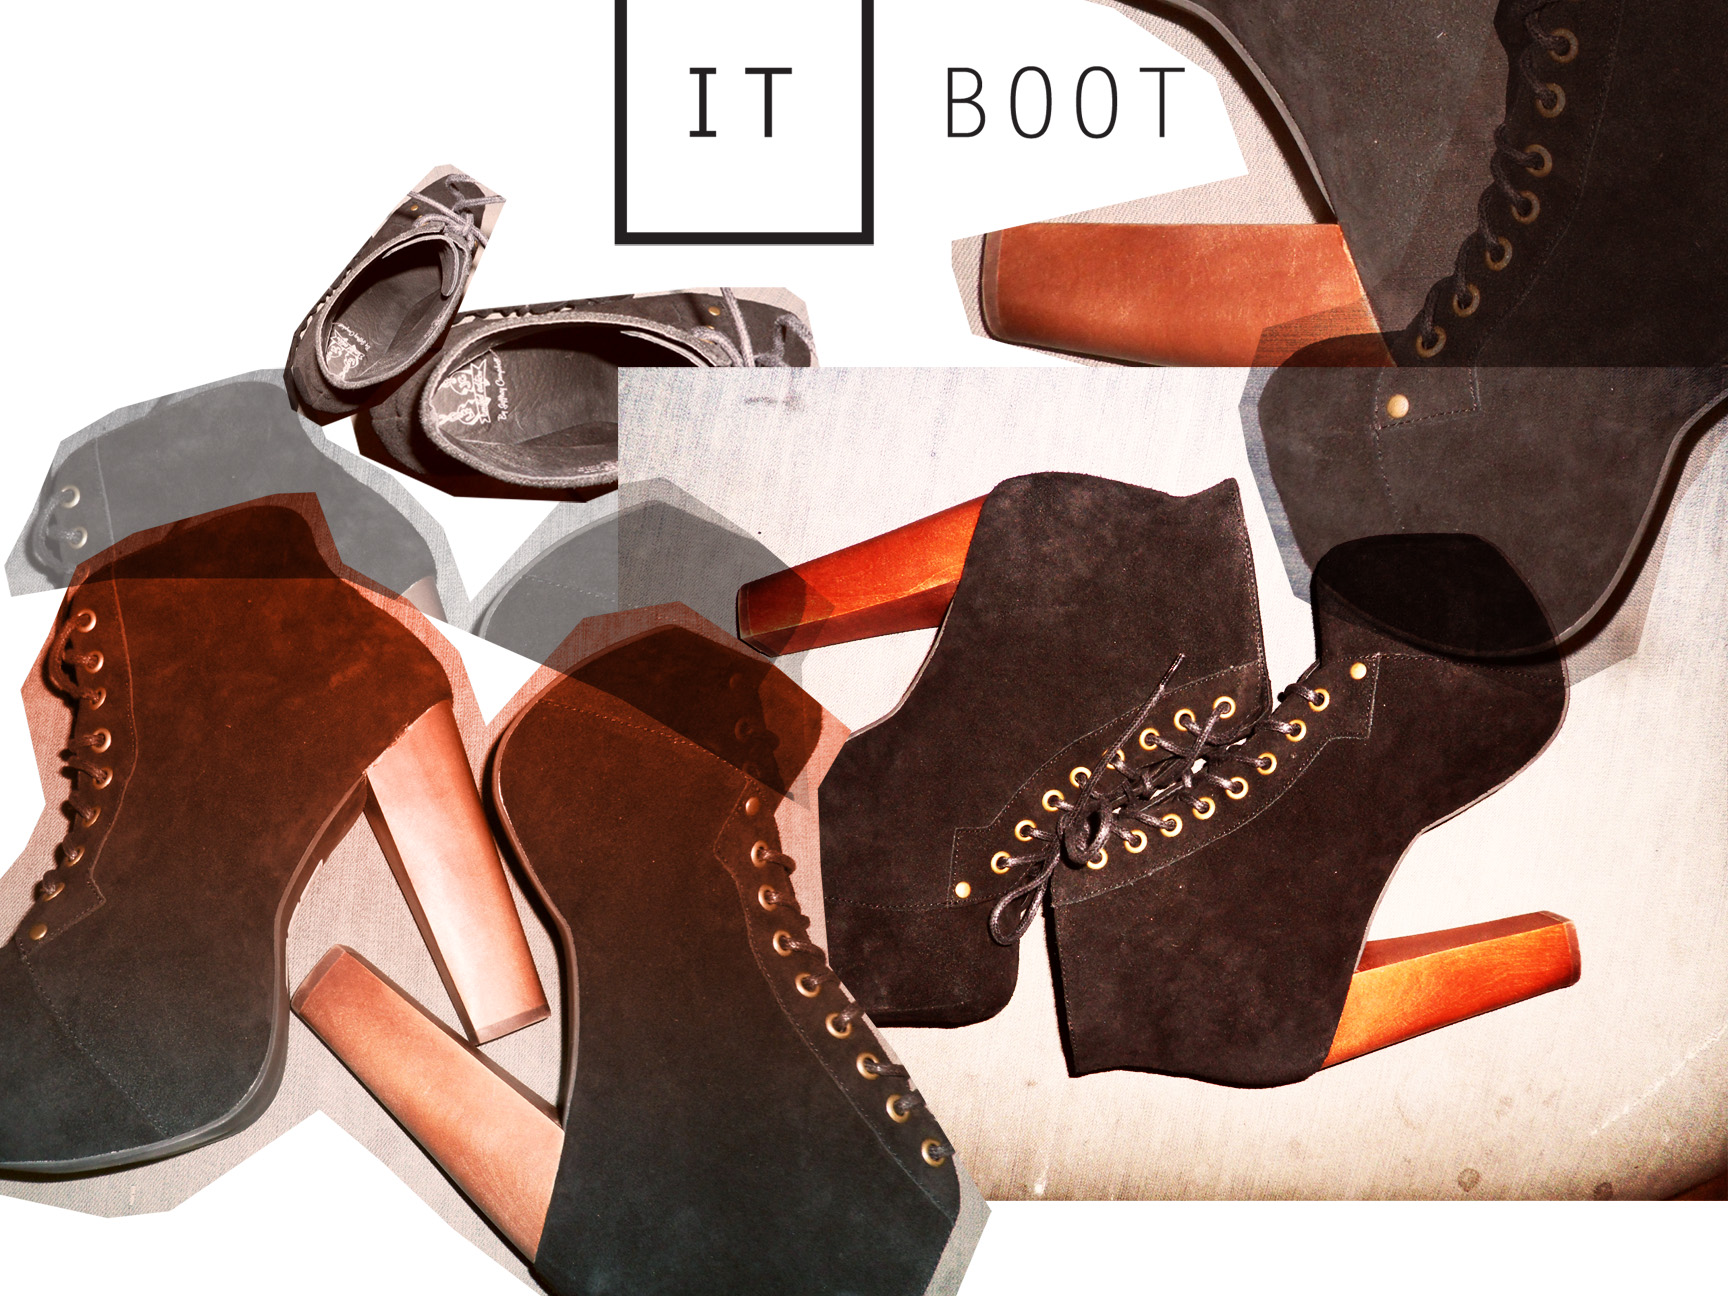 Jeffrey-Campbell-ItBoot